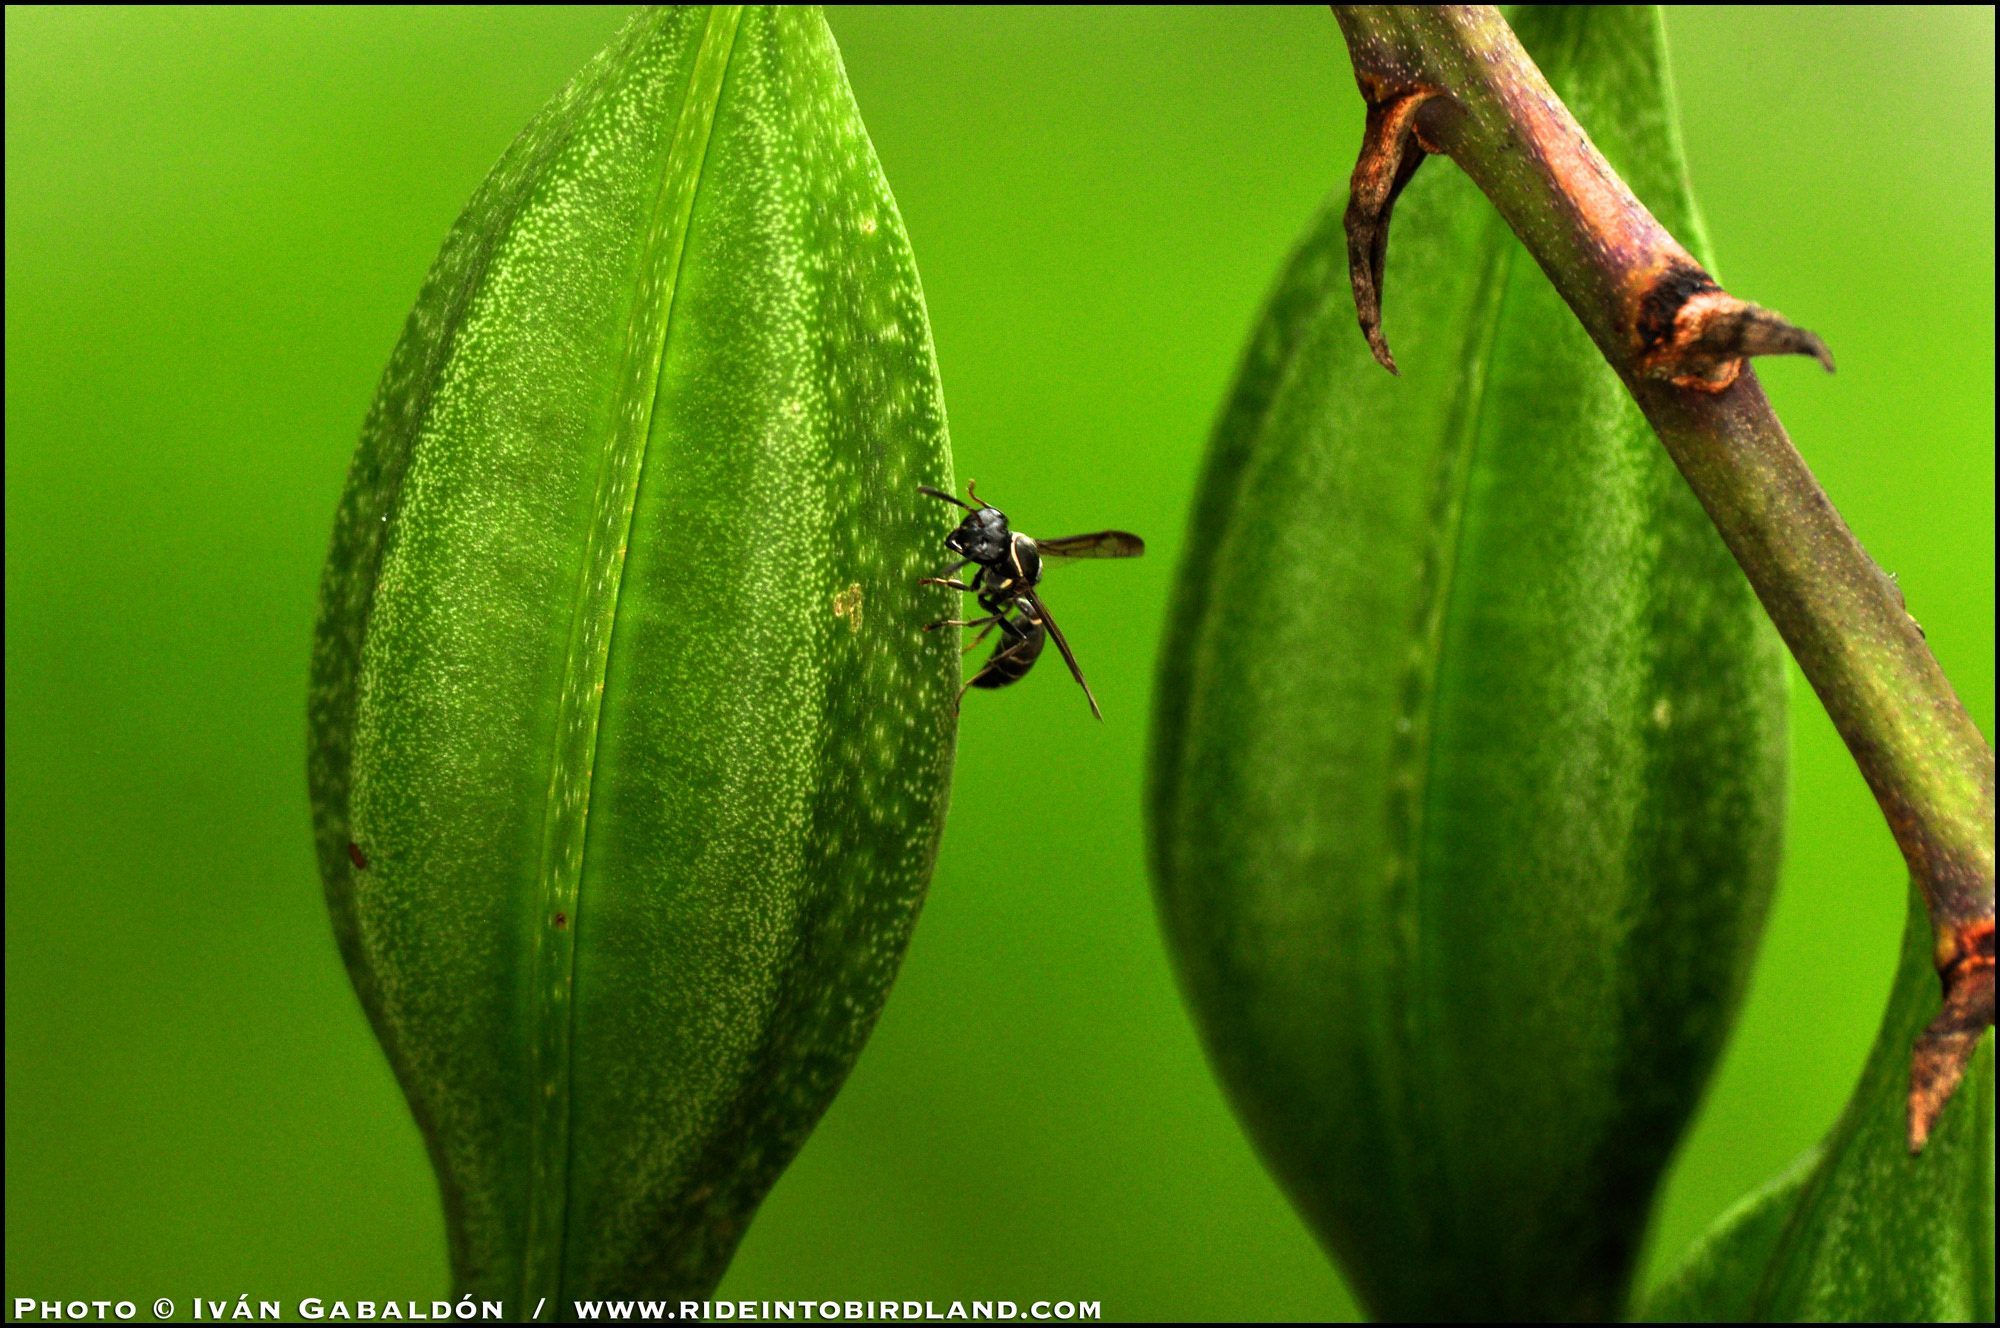 Not to be ignored, a wasp joins the action. (Photo © Iván Gabaldón).